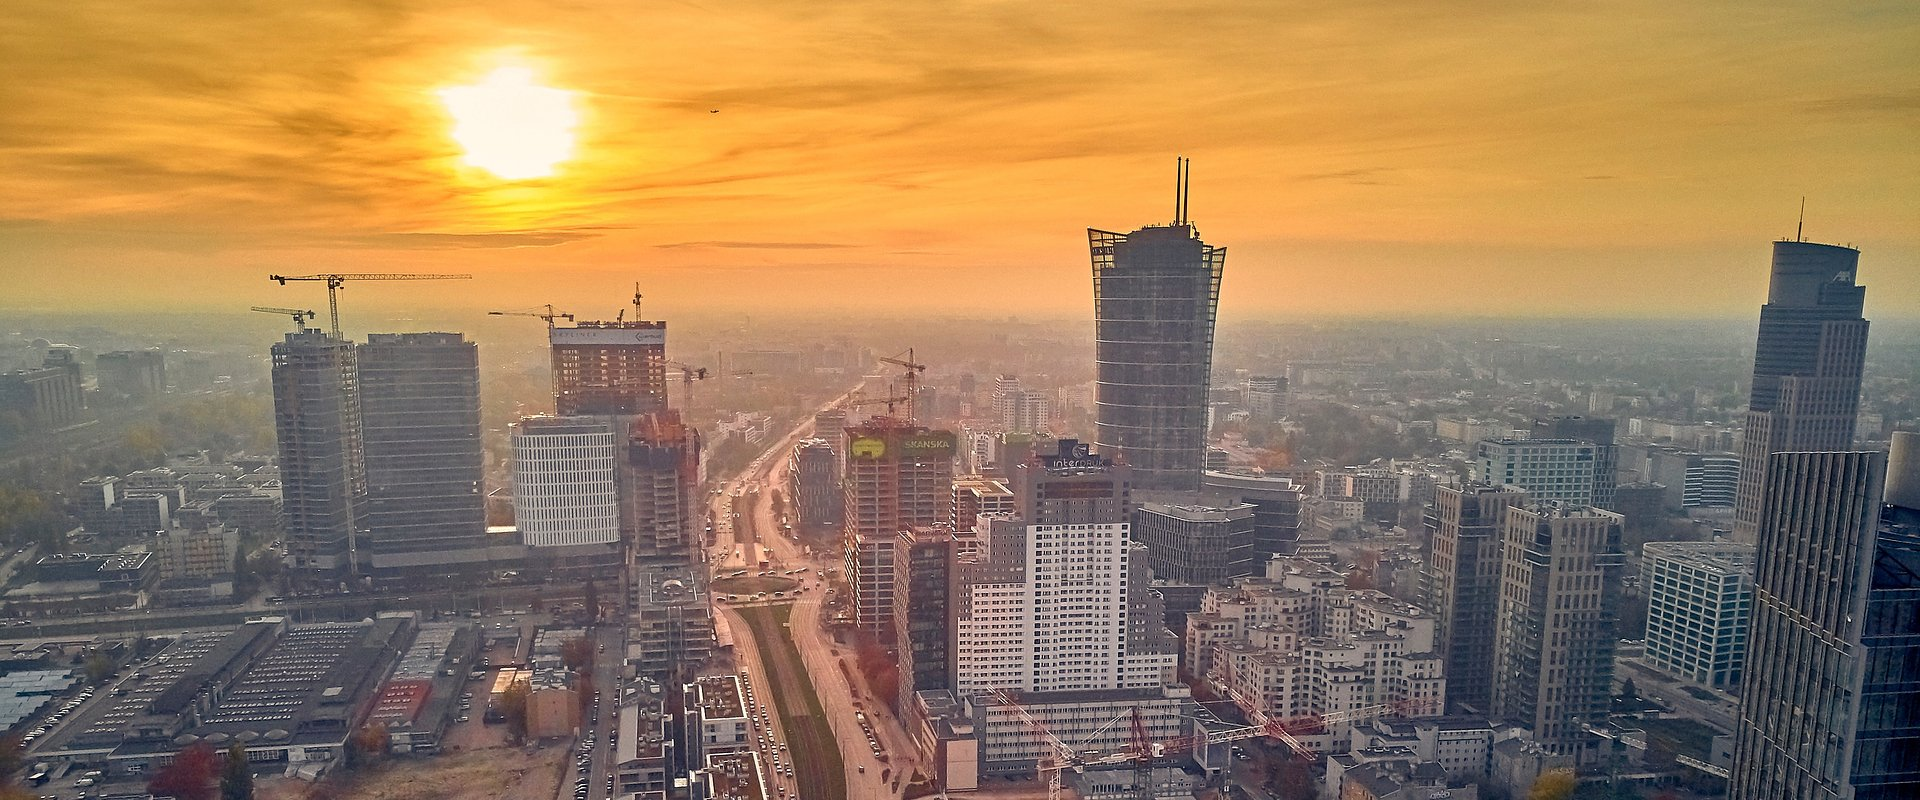 While exercising caution, investors continue to show interest in commercial real estate throghout Poland. The industrial and logistics sector is going for a record.